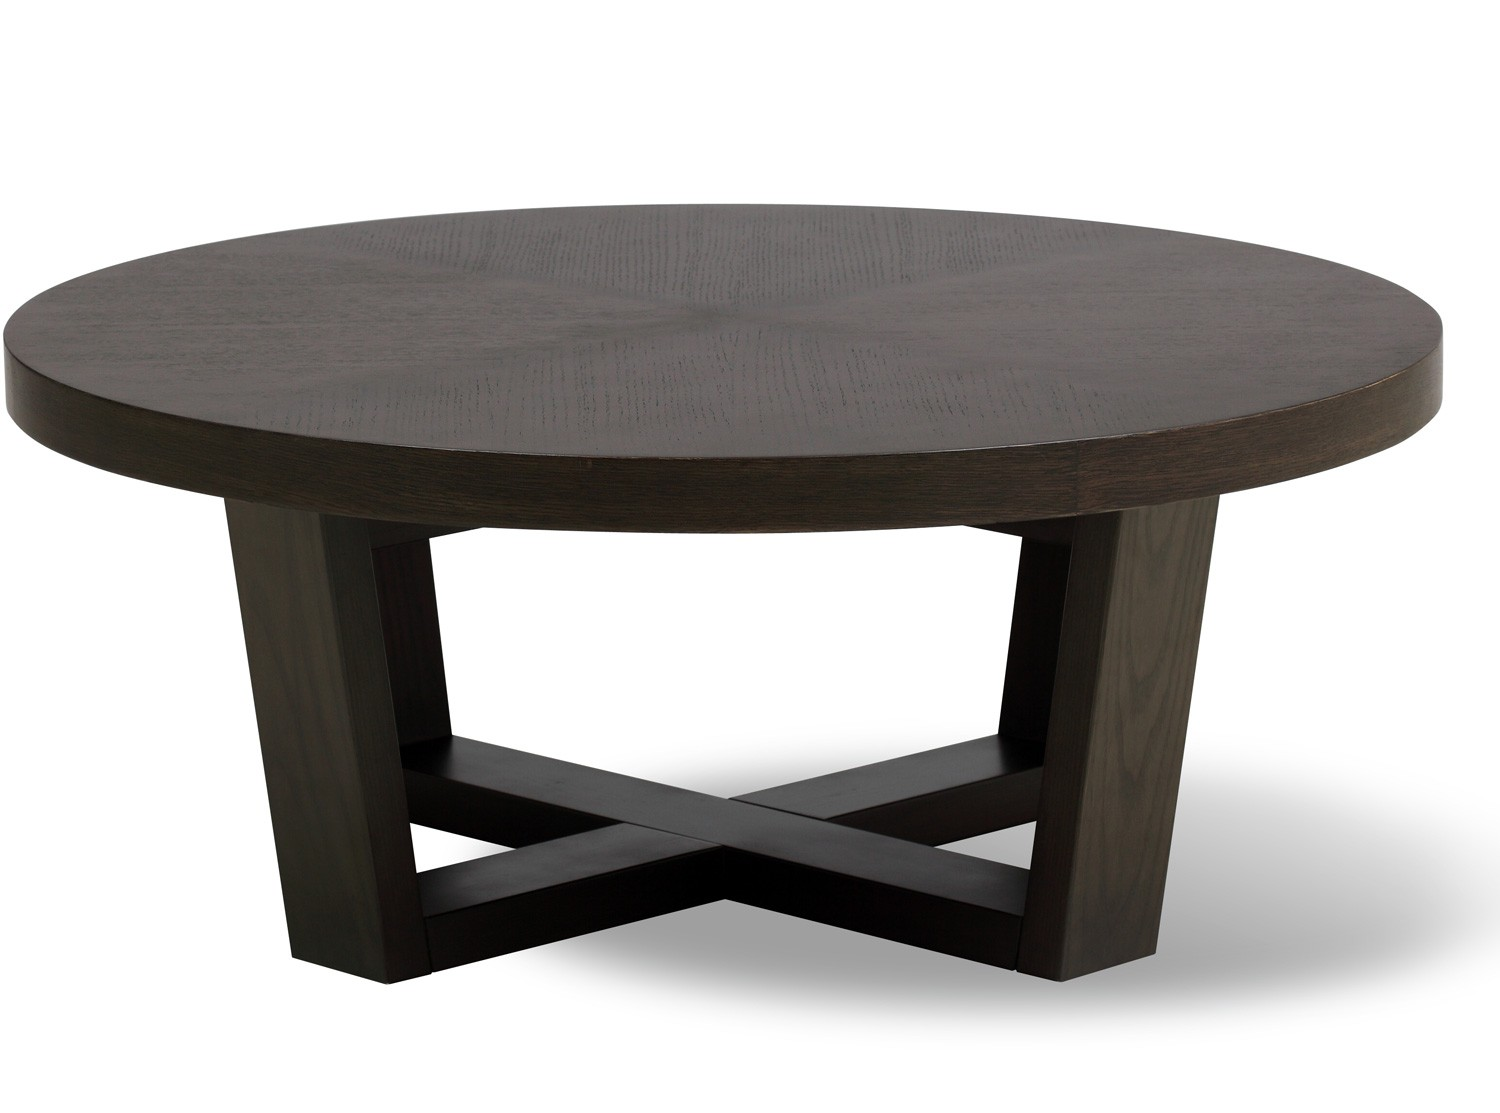 Tamma Round Coffee Table (100 Cm